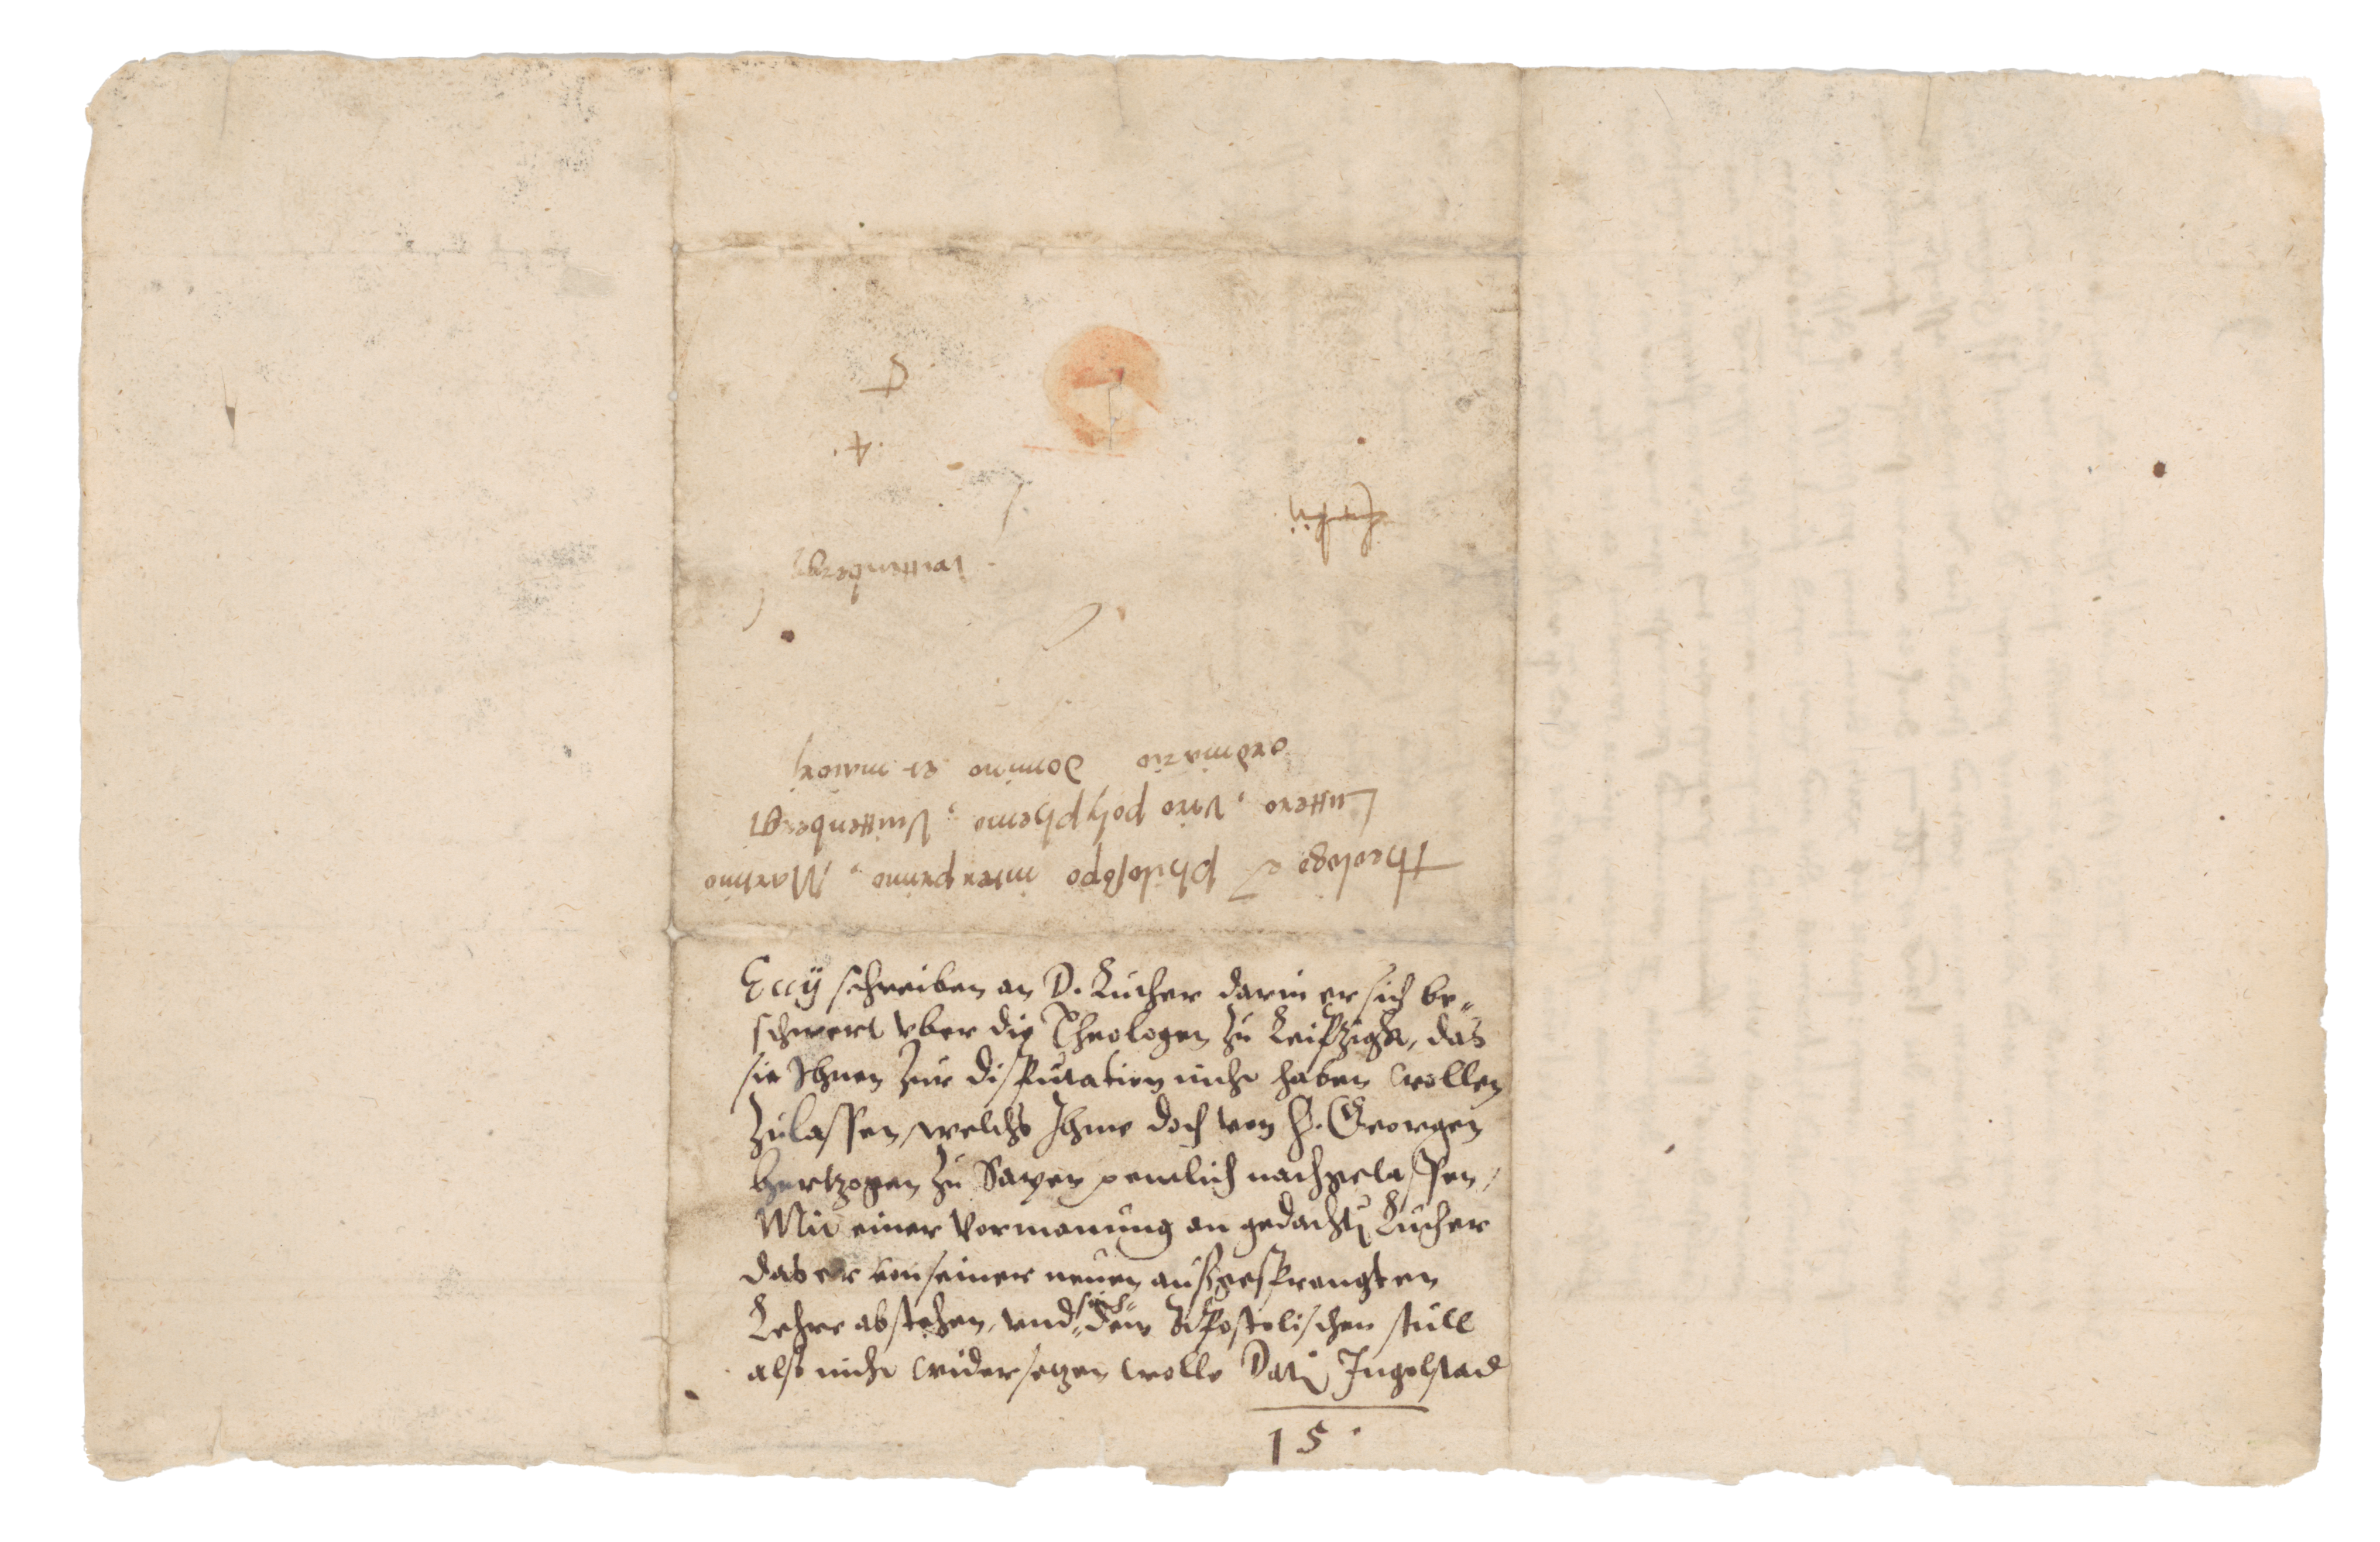 01-10024,Loc_10300-02,Bl_44verso.png